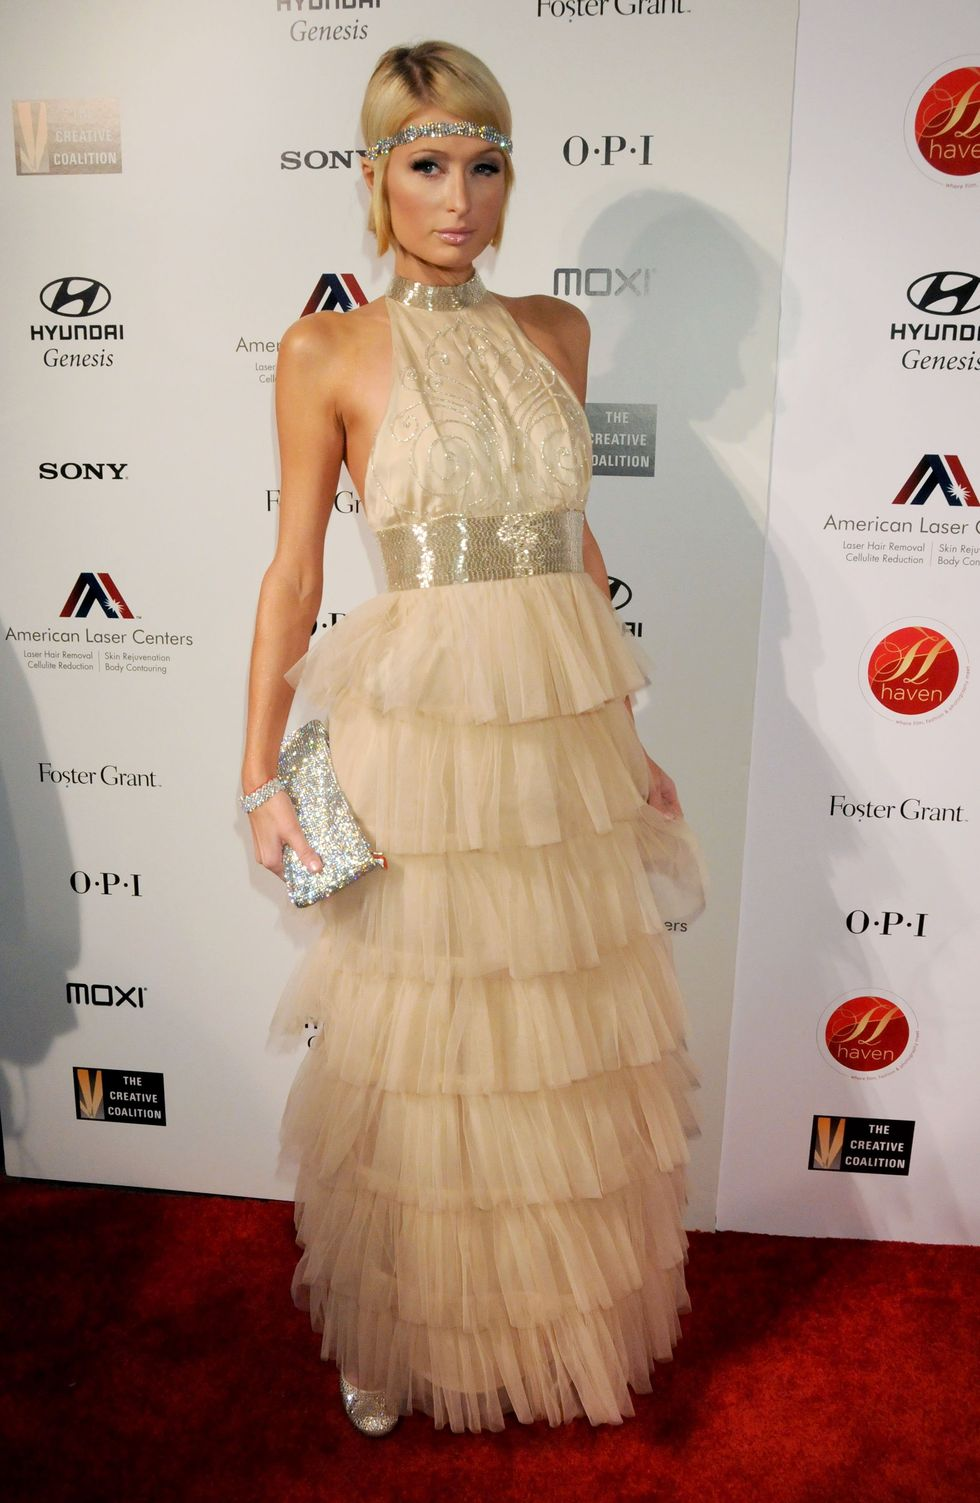 paris-hilton-haven-evening-of-fashion-in-beverly-hills-03